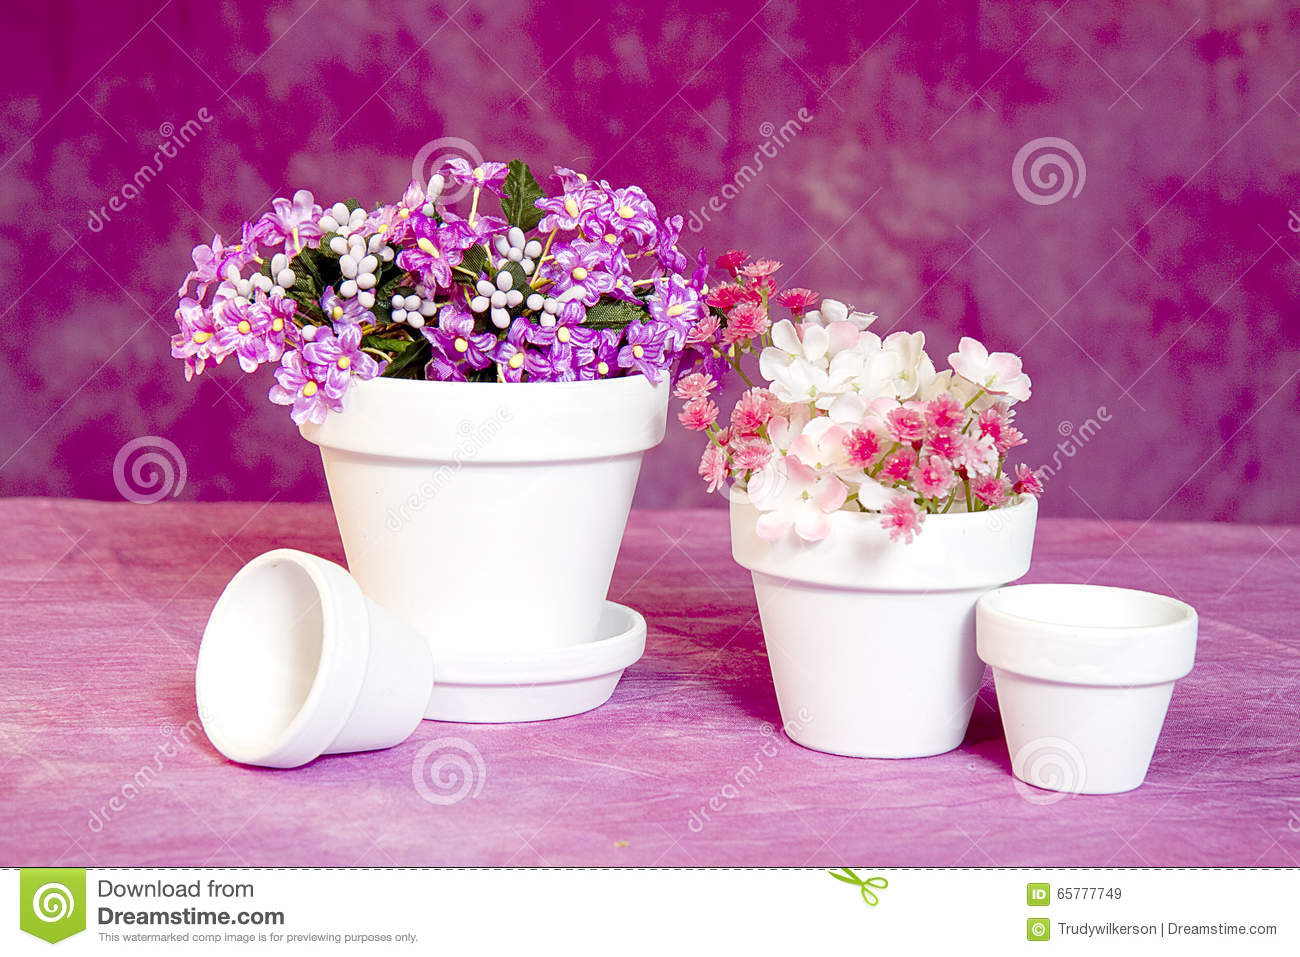 Miniature flower pots and flowers stock image image of flora miniature white clay flower pots with small clusters of flowers sitting on textured pink canvas an assortment of different size pots mightylinksfo